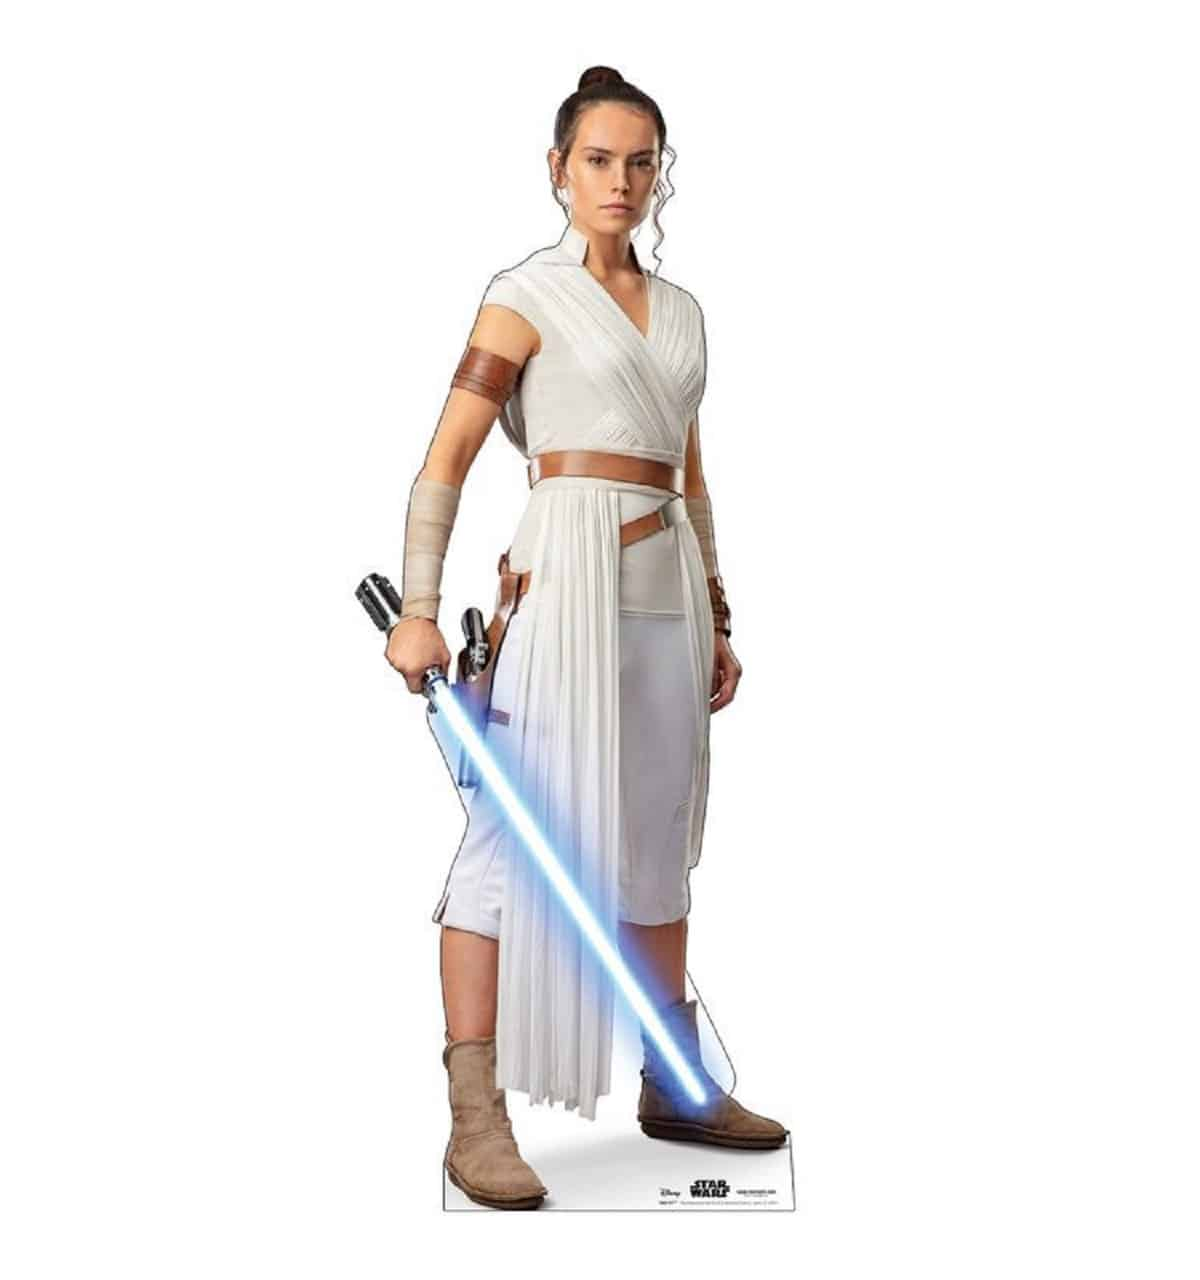 Rey armed with a lightsaber